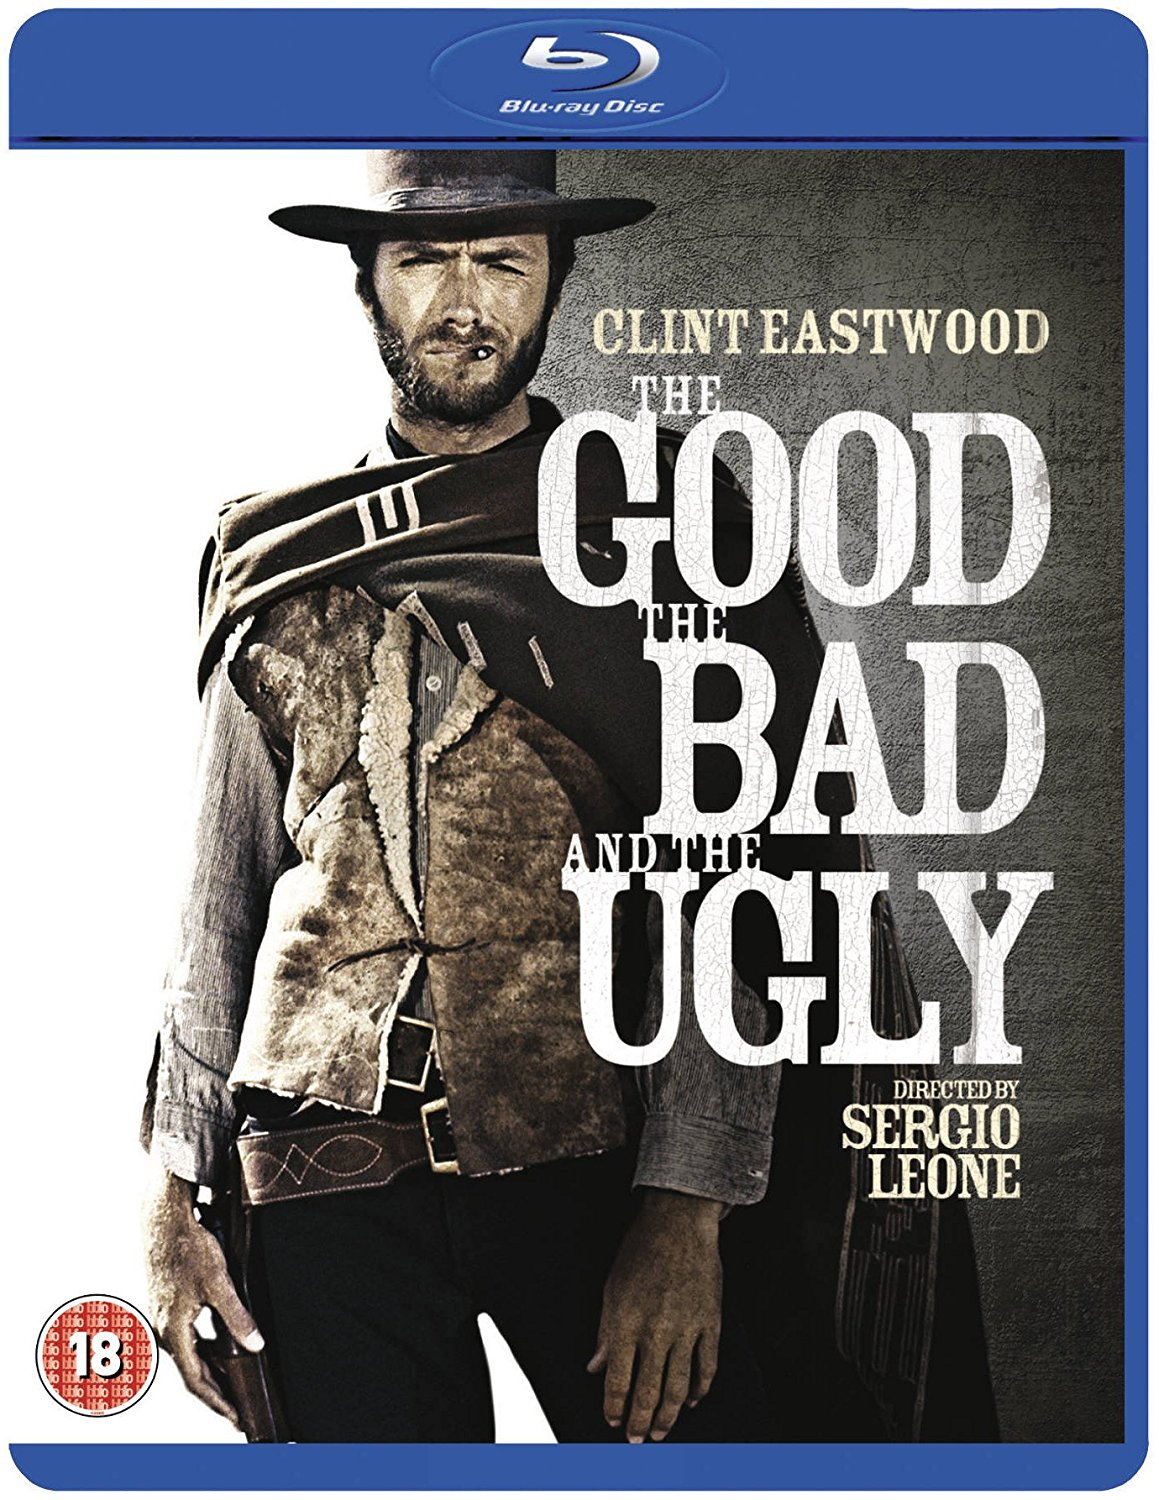 Buy The Good, The Bad and The Ugly (Blu-ray)